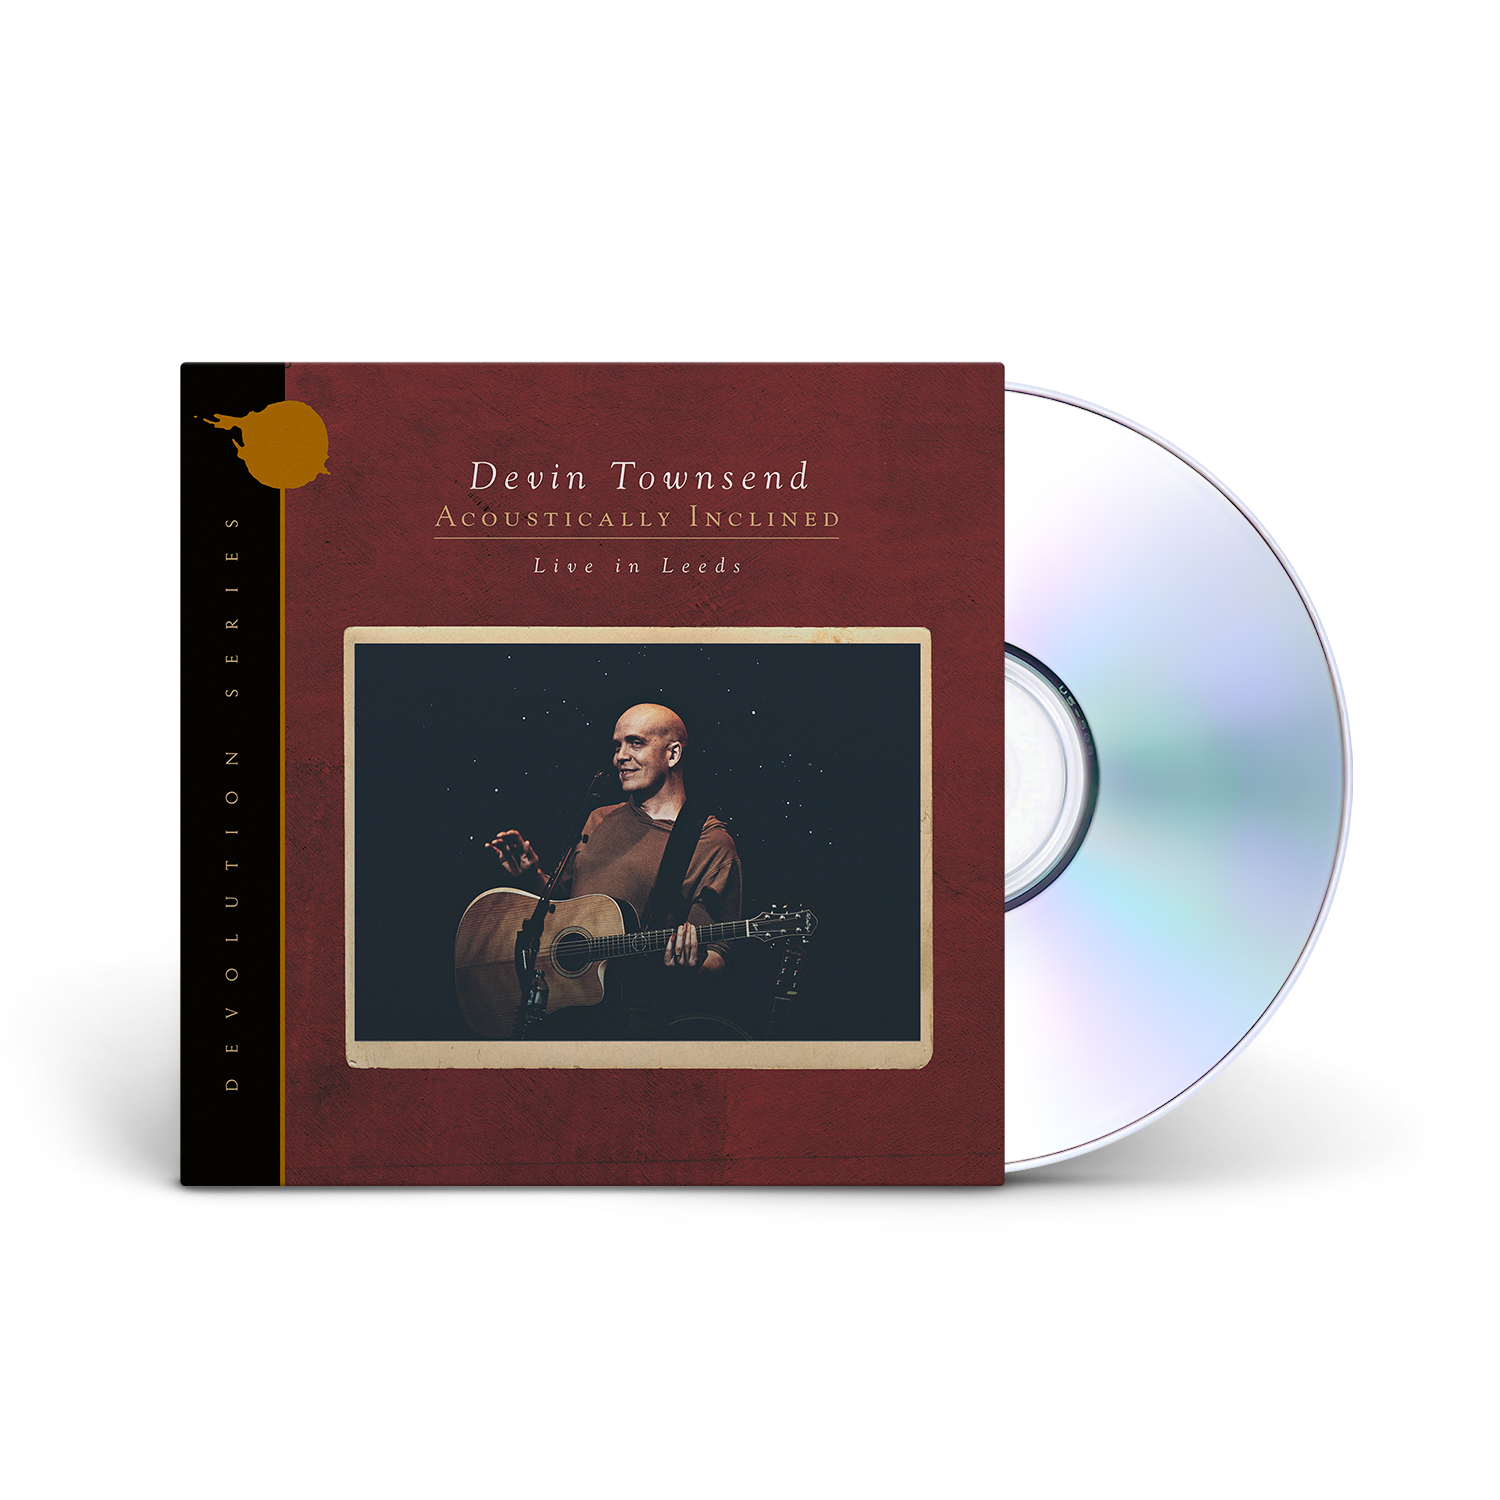 Devin Townsend - Devolution Series #1 - Acoustically Inclined, Live in Leeds CD Digipak + Digital Download